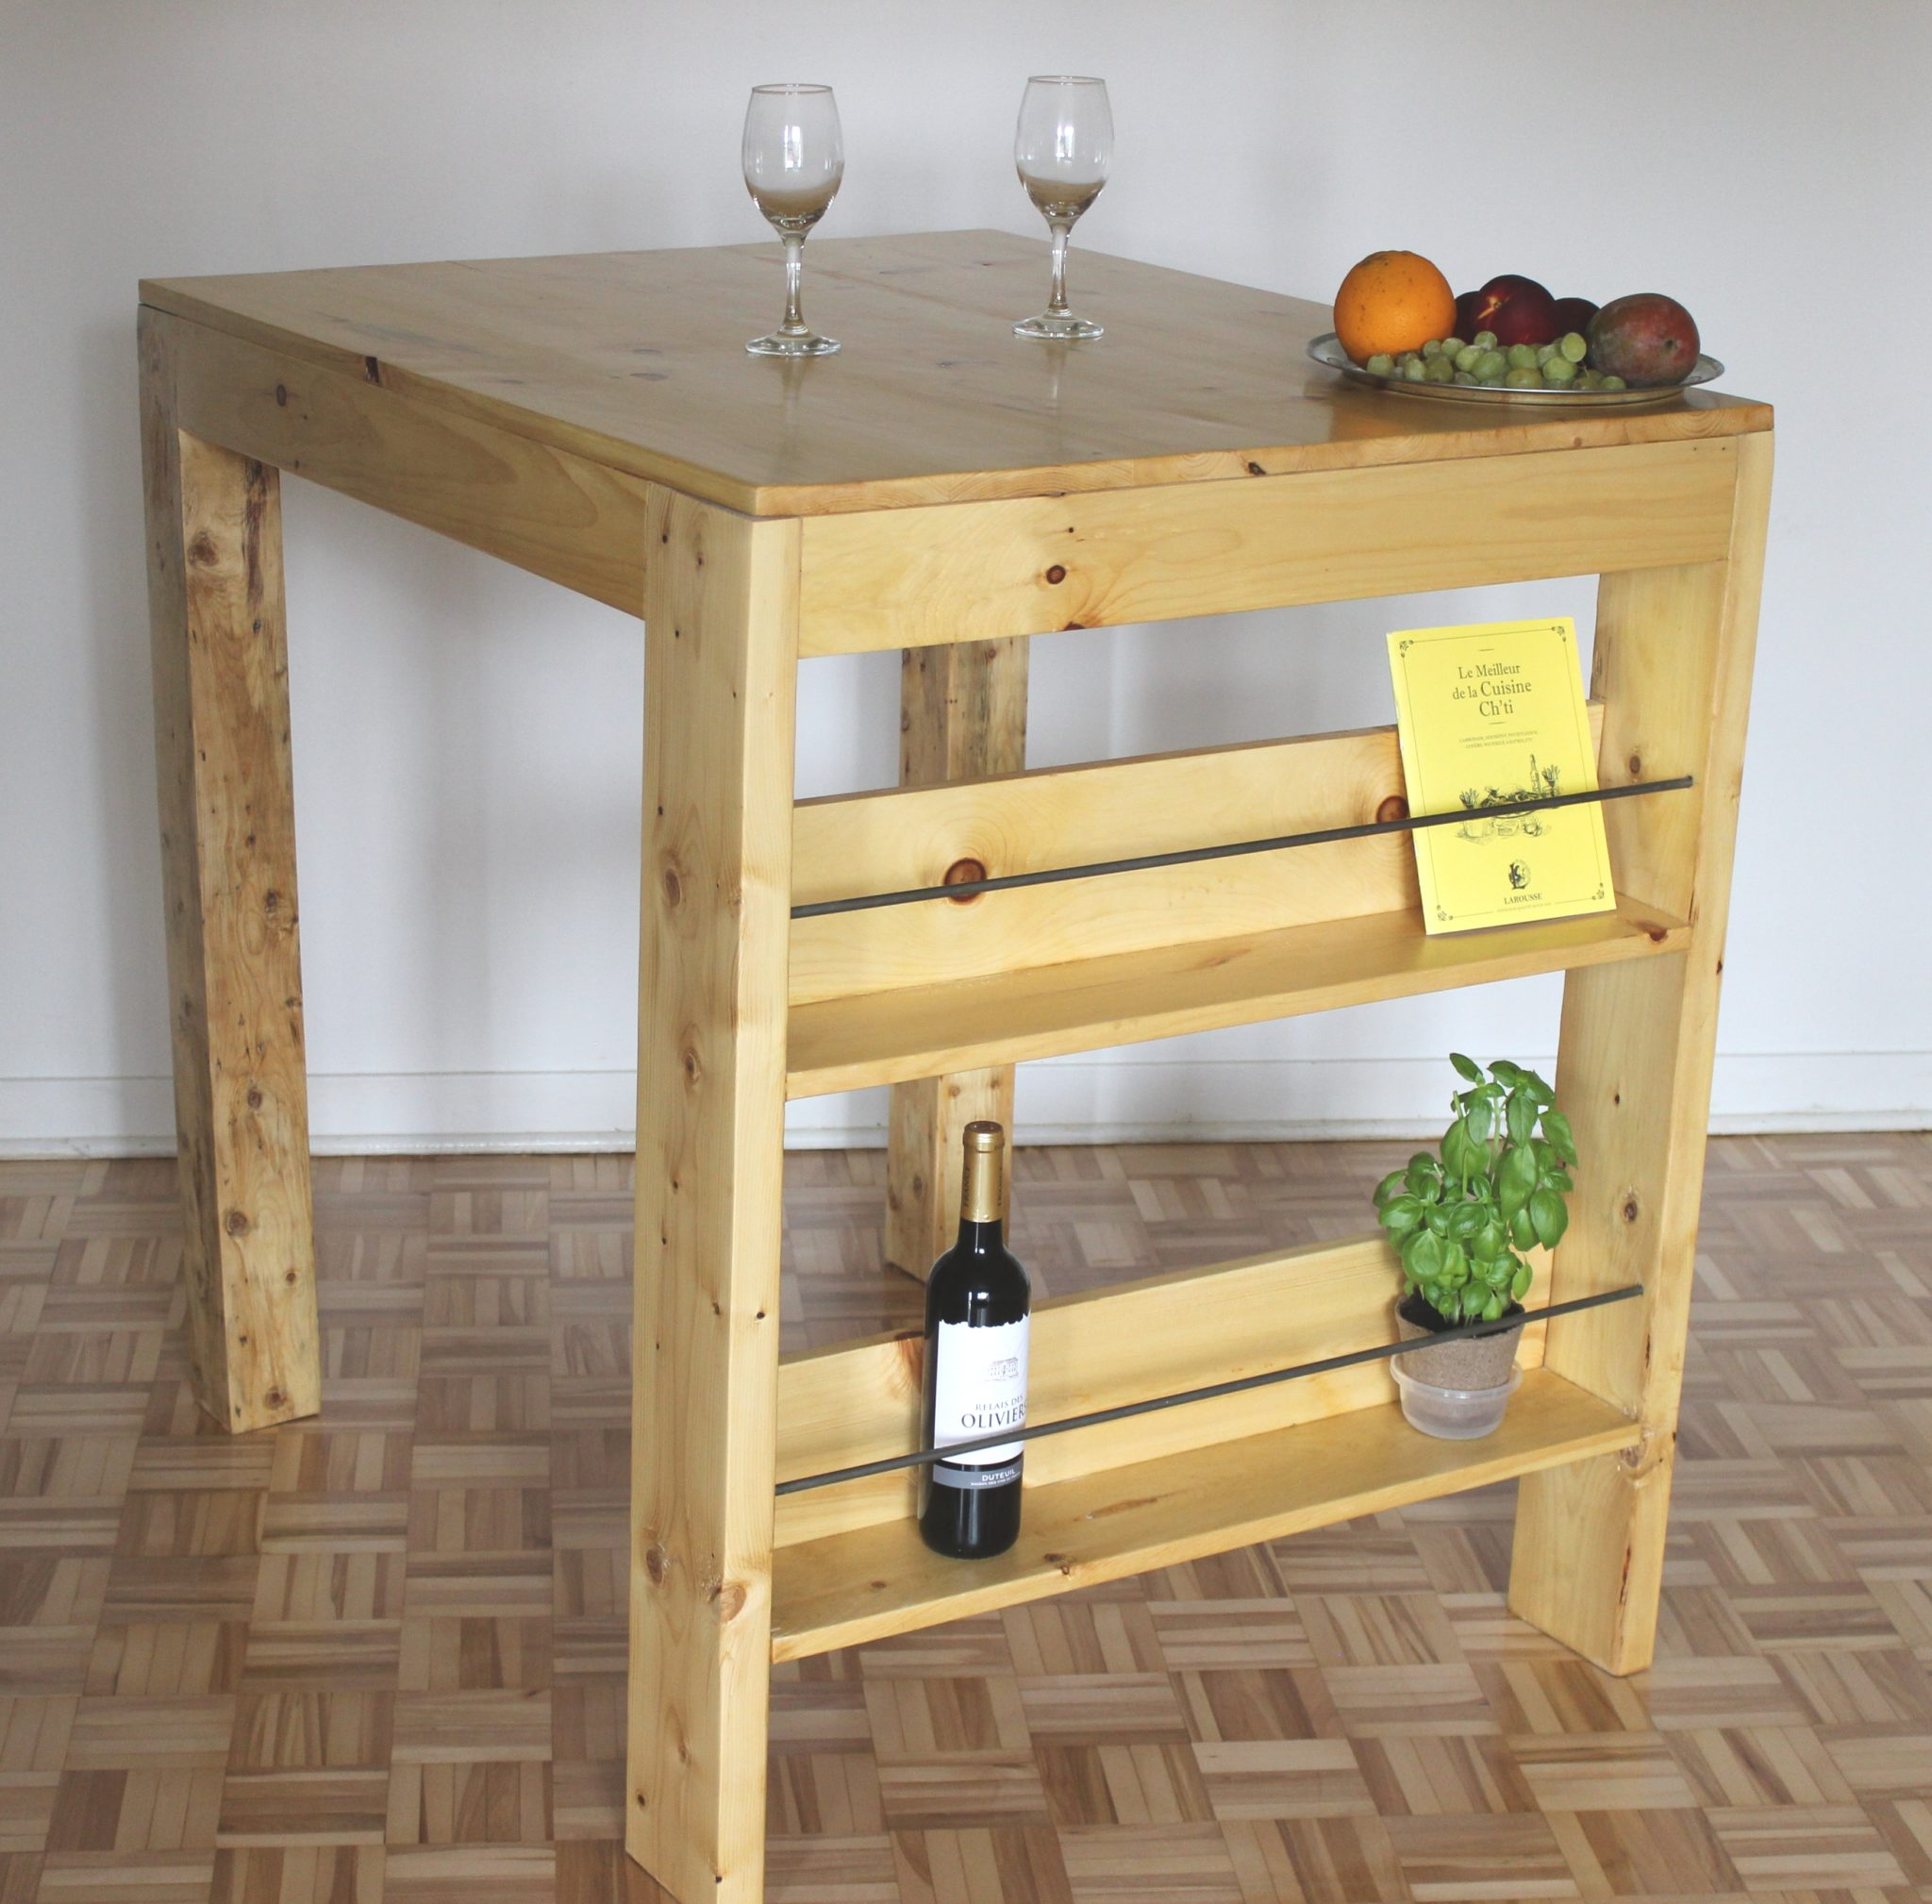 Comment faire une table haute ep02 for Table de cuisine haute